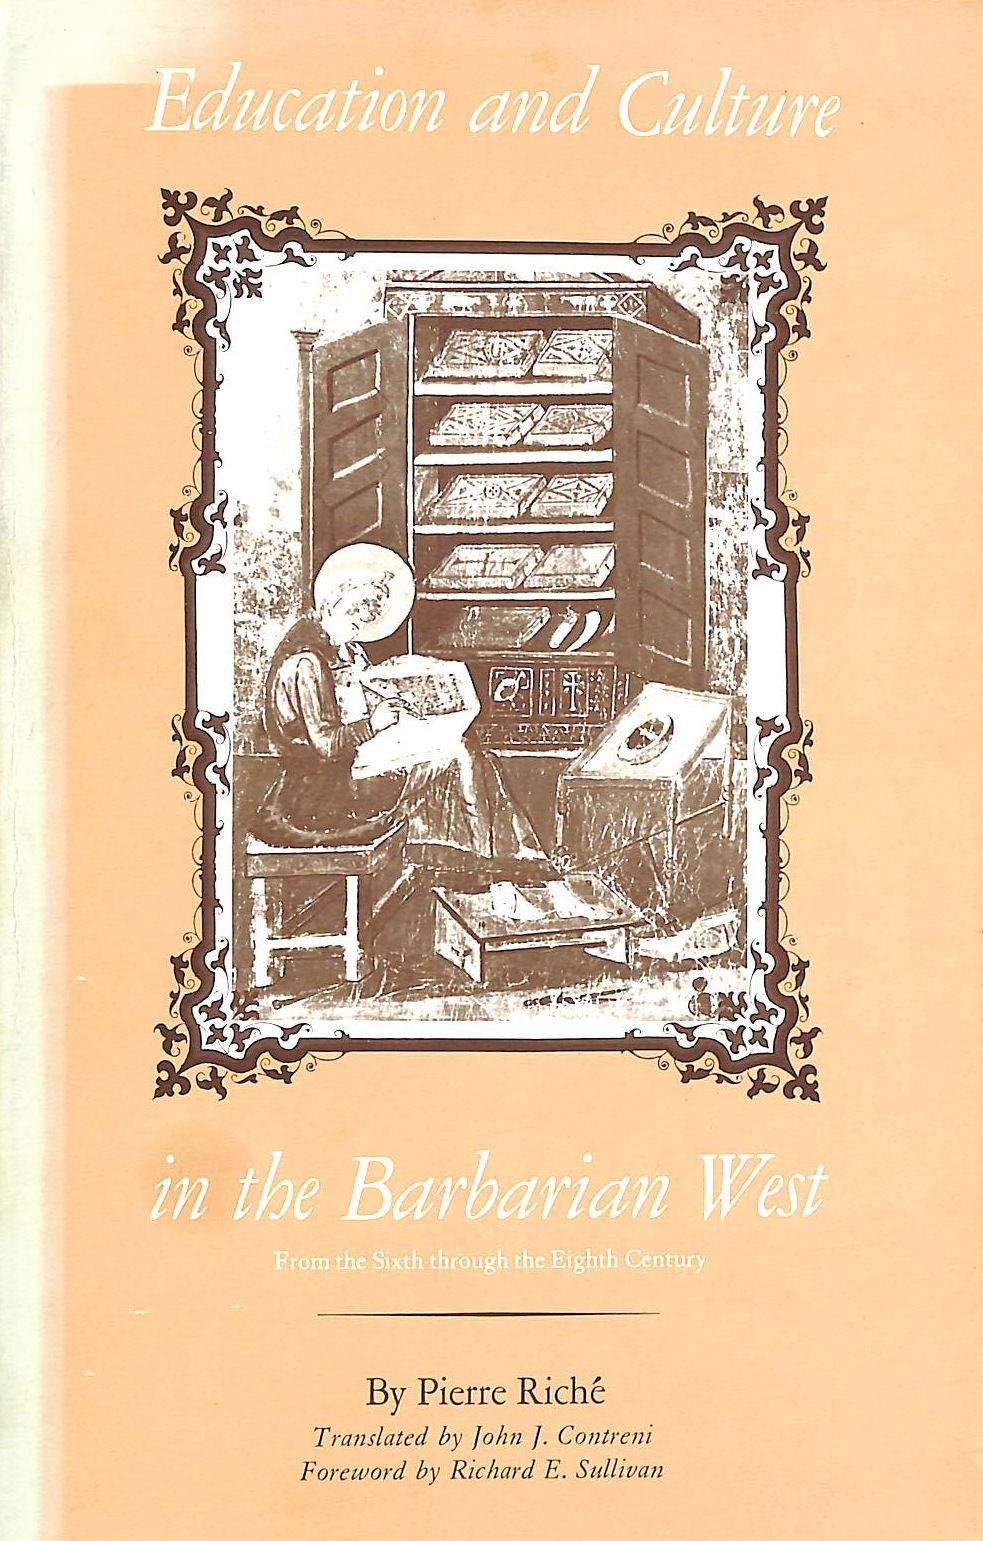 Education and Culture in the Barbarian West, from the Sixth Through the Eighth Century